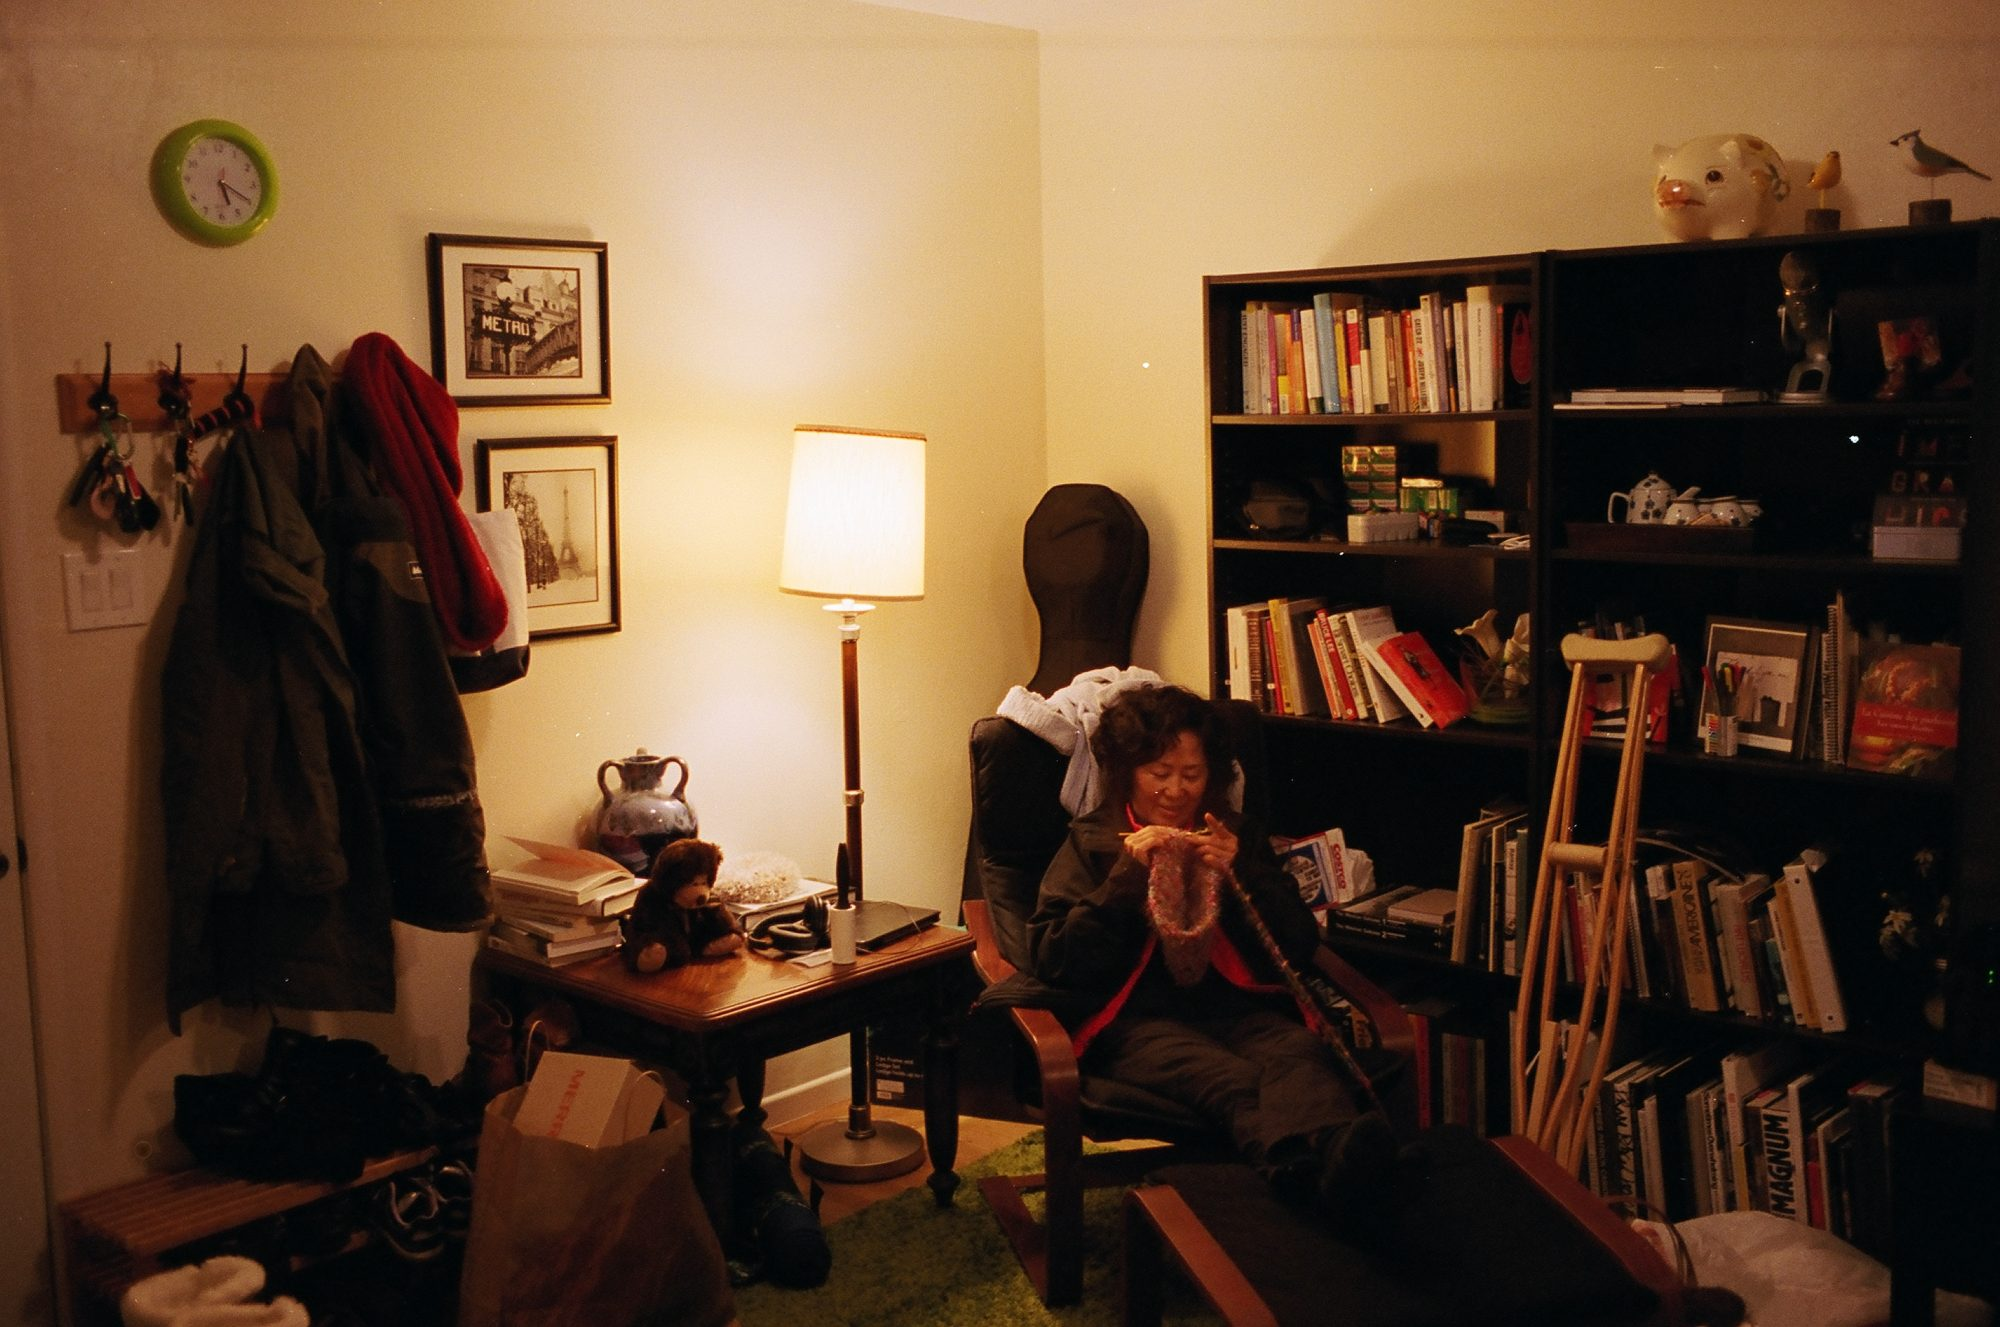 My mom knitting in our old berkeley apartment, 2013